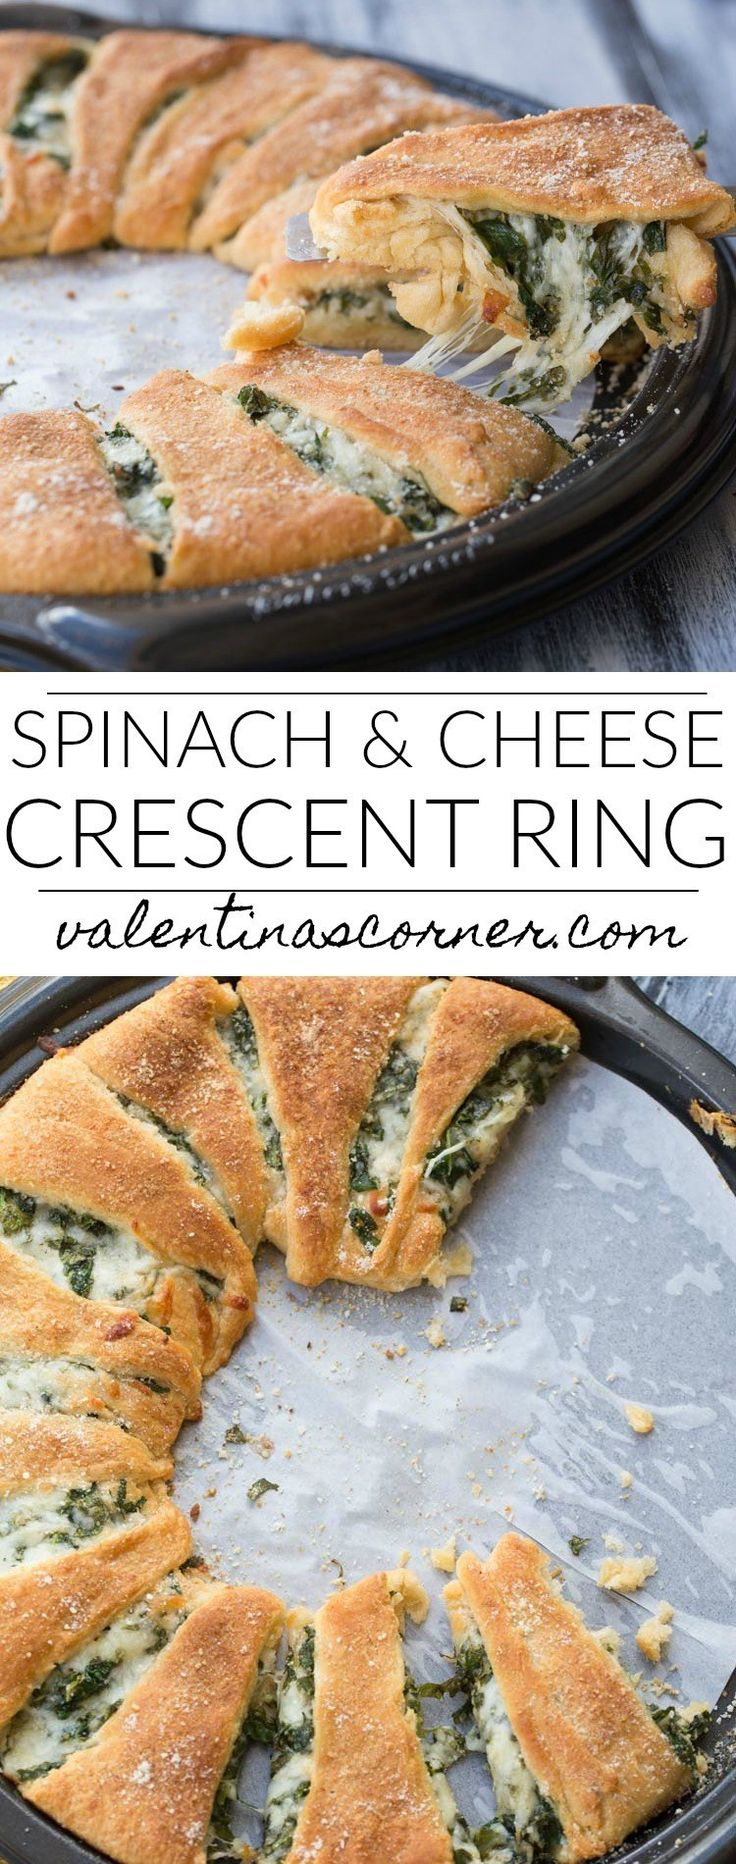 Spinach and Cheese Crescent Ring Recipe